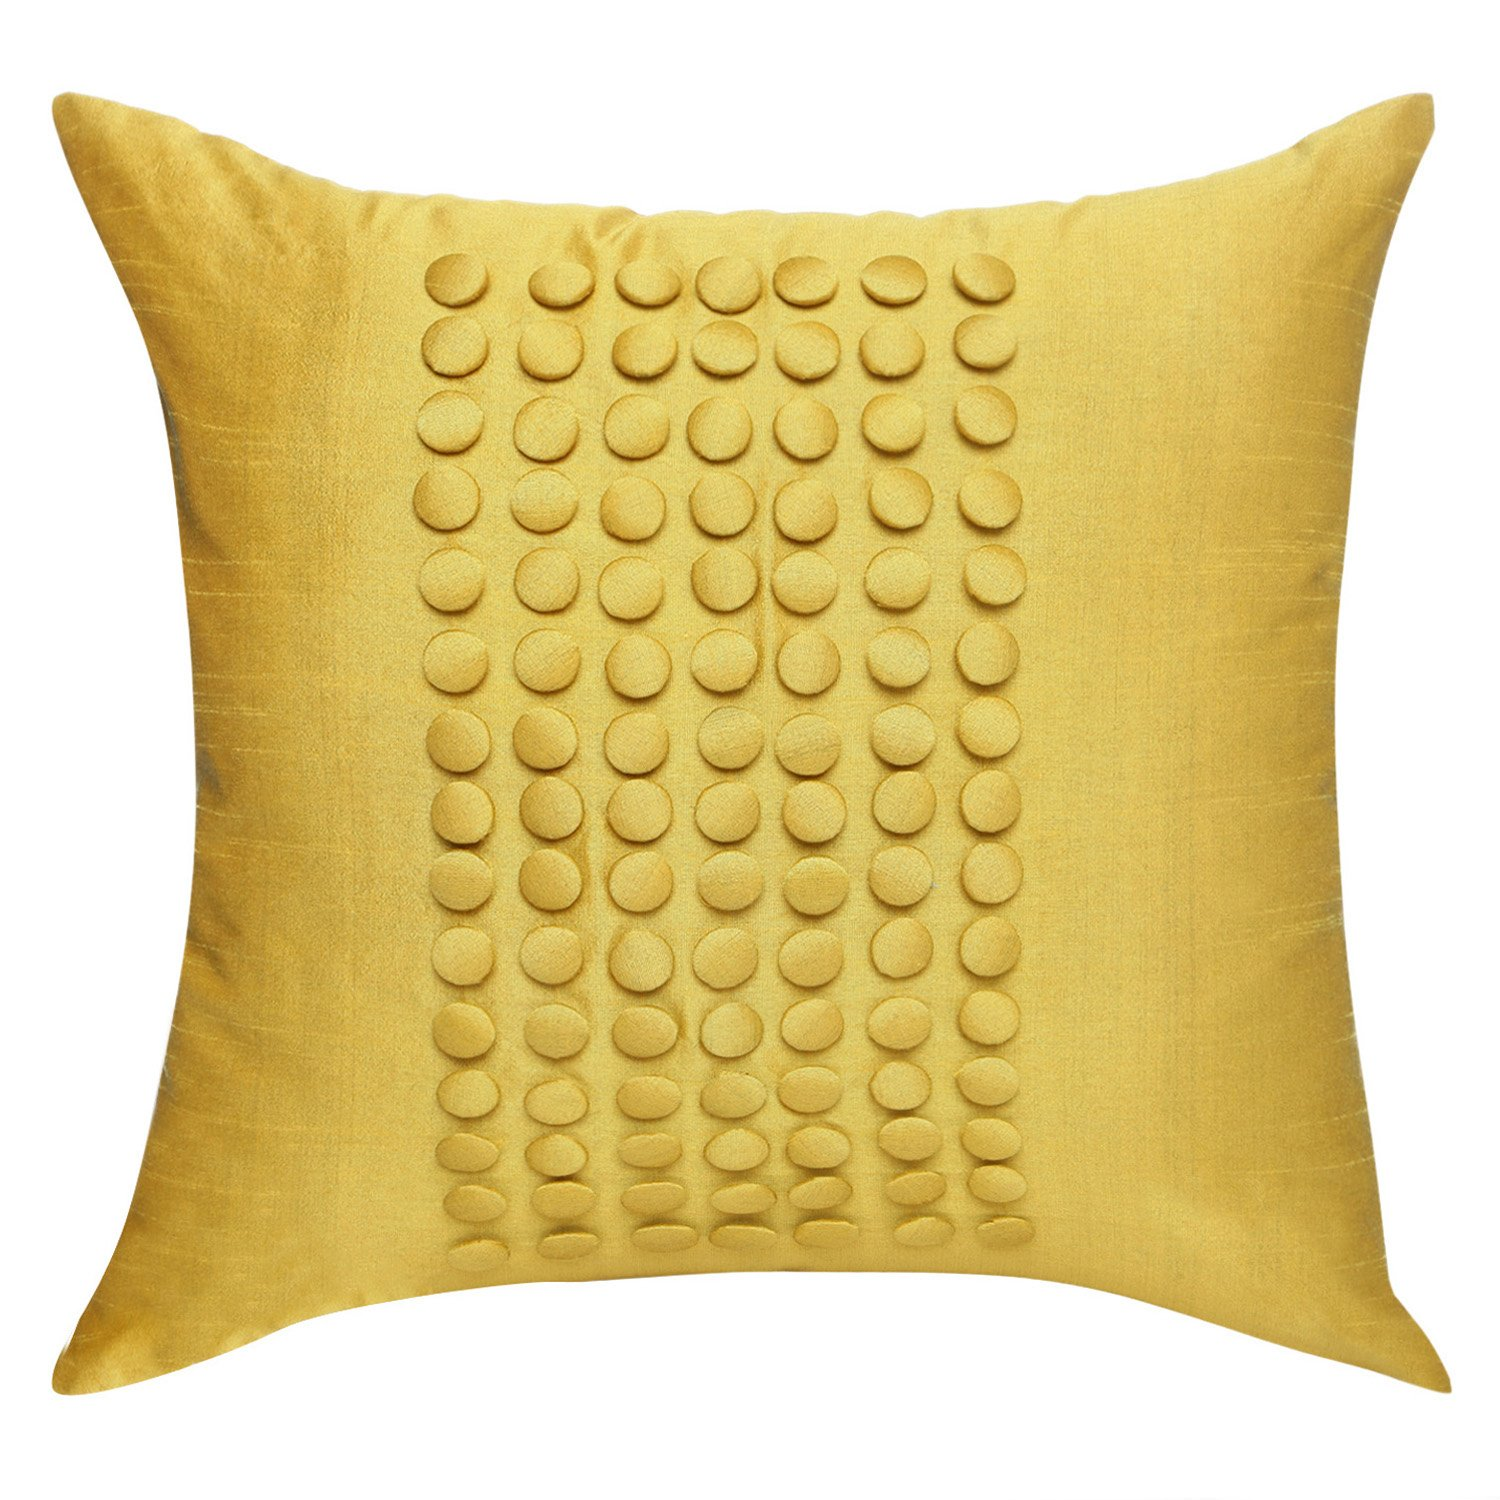 Decorative Pillows Yellow Textured Throw Pillow Cover Mustard Yellow, Button Panel